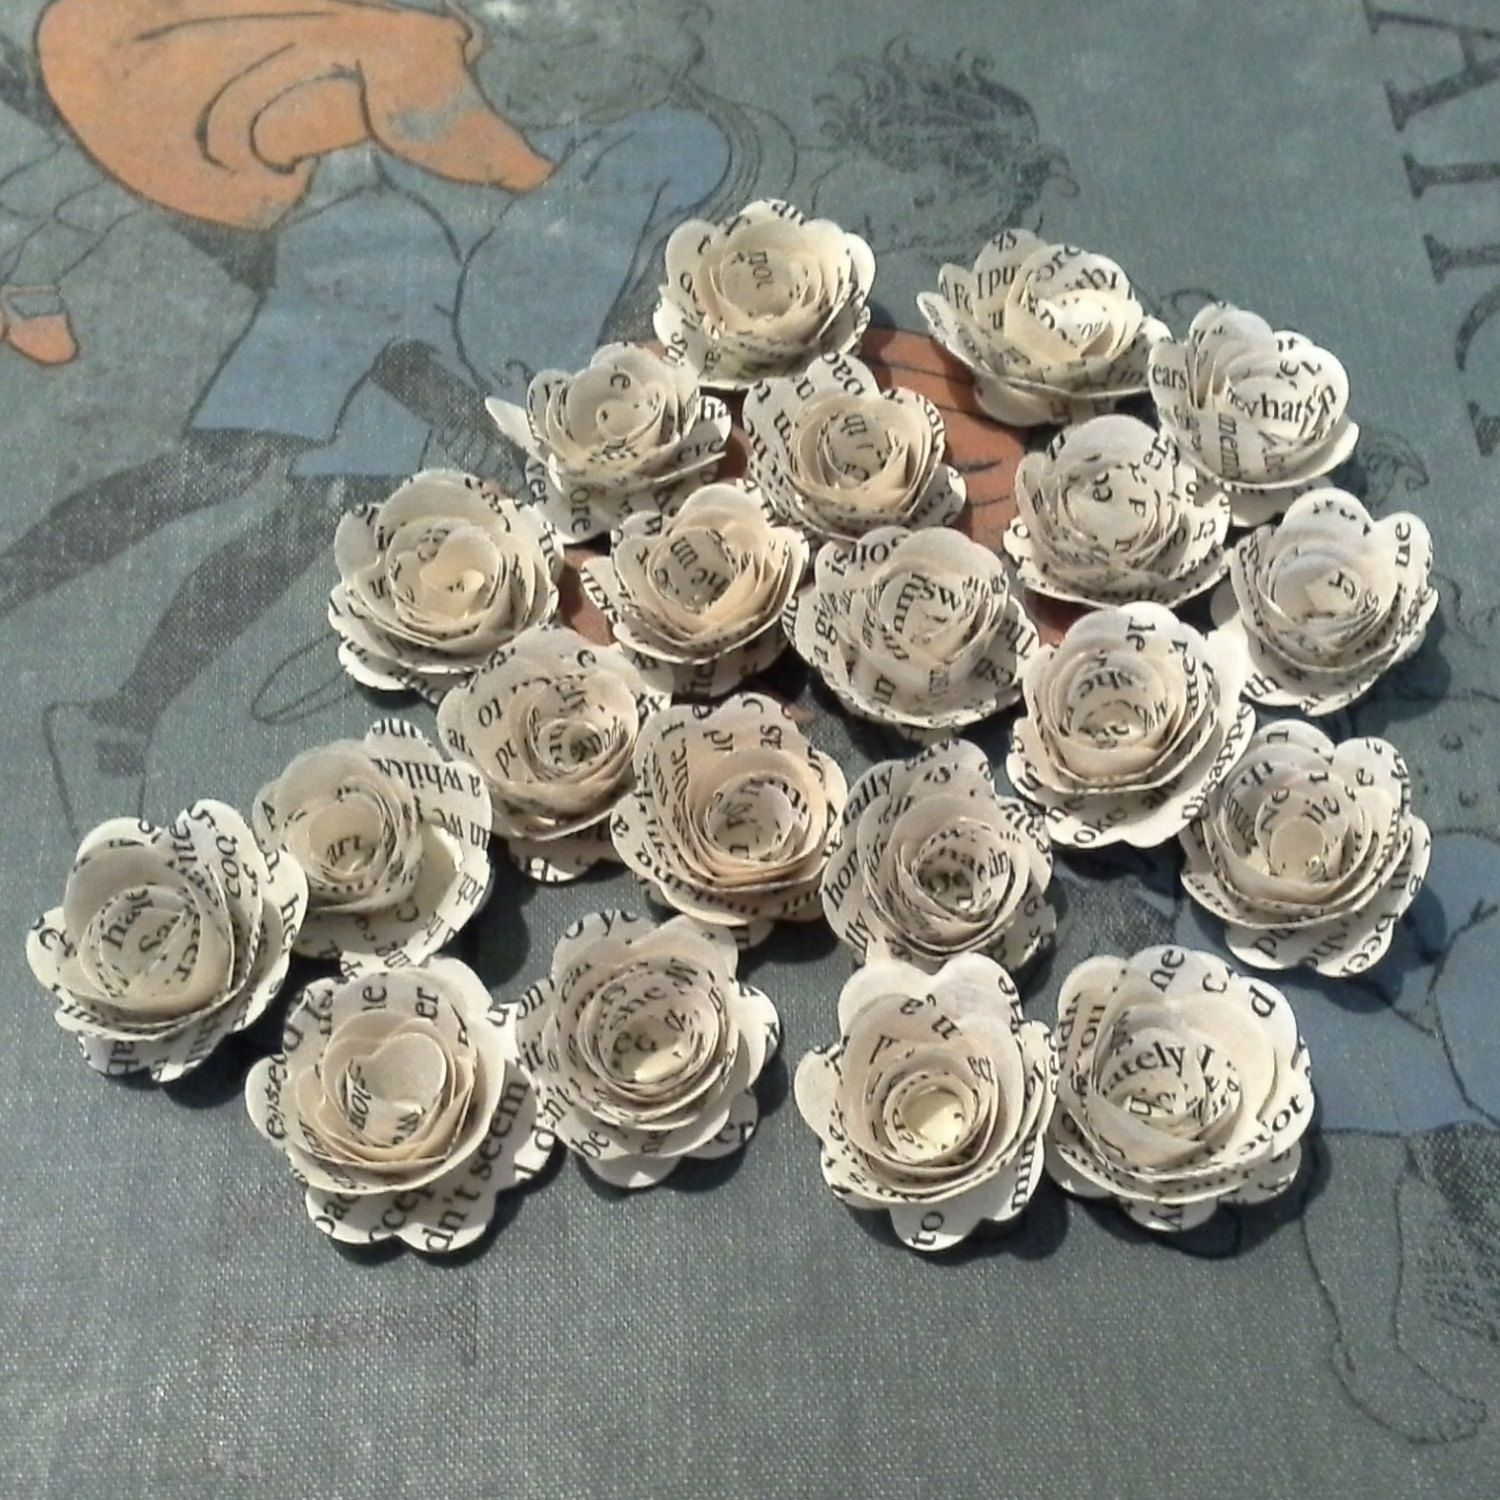 25 book page rolled roses perfect for weddings decorations invitations paper crafts